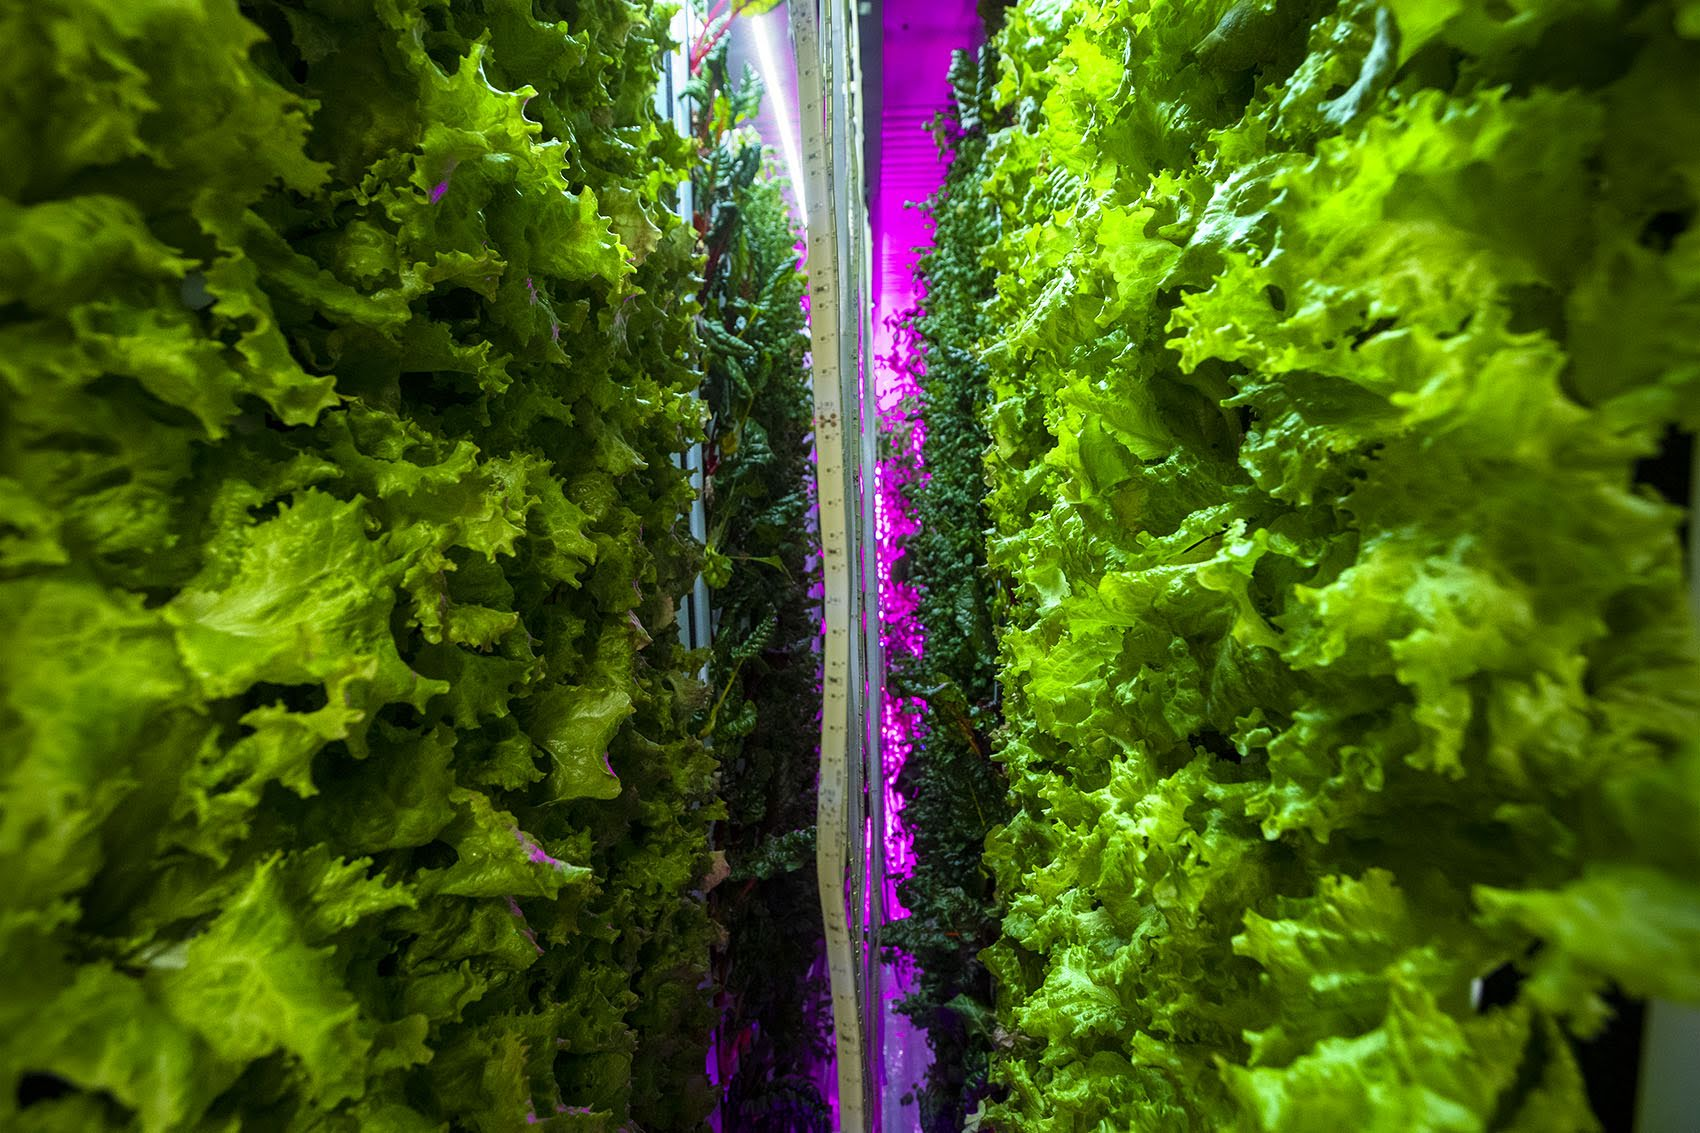 Lettuce grows vertically in a controlled environment using LED lights and a hydroponic growth system in the Freight Farm Leafy Green Machine. (Jesse Costa/WBUR)